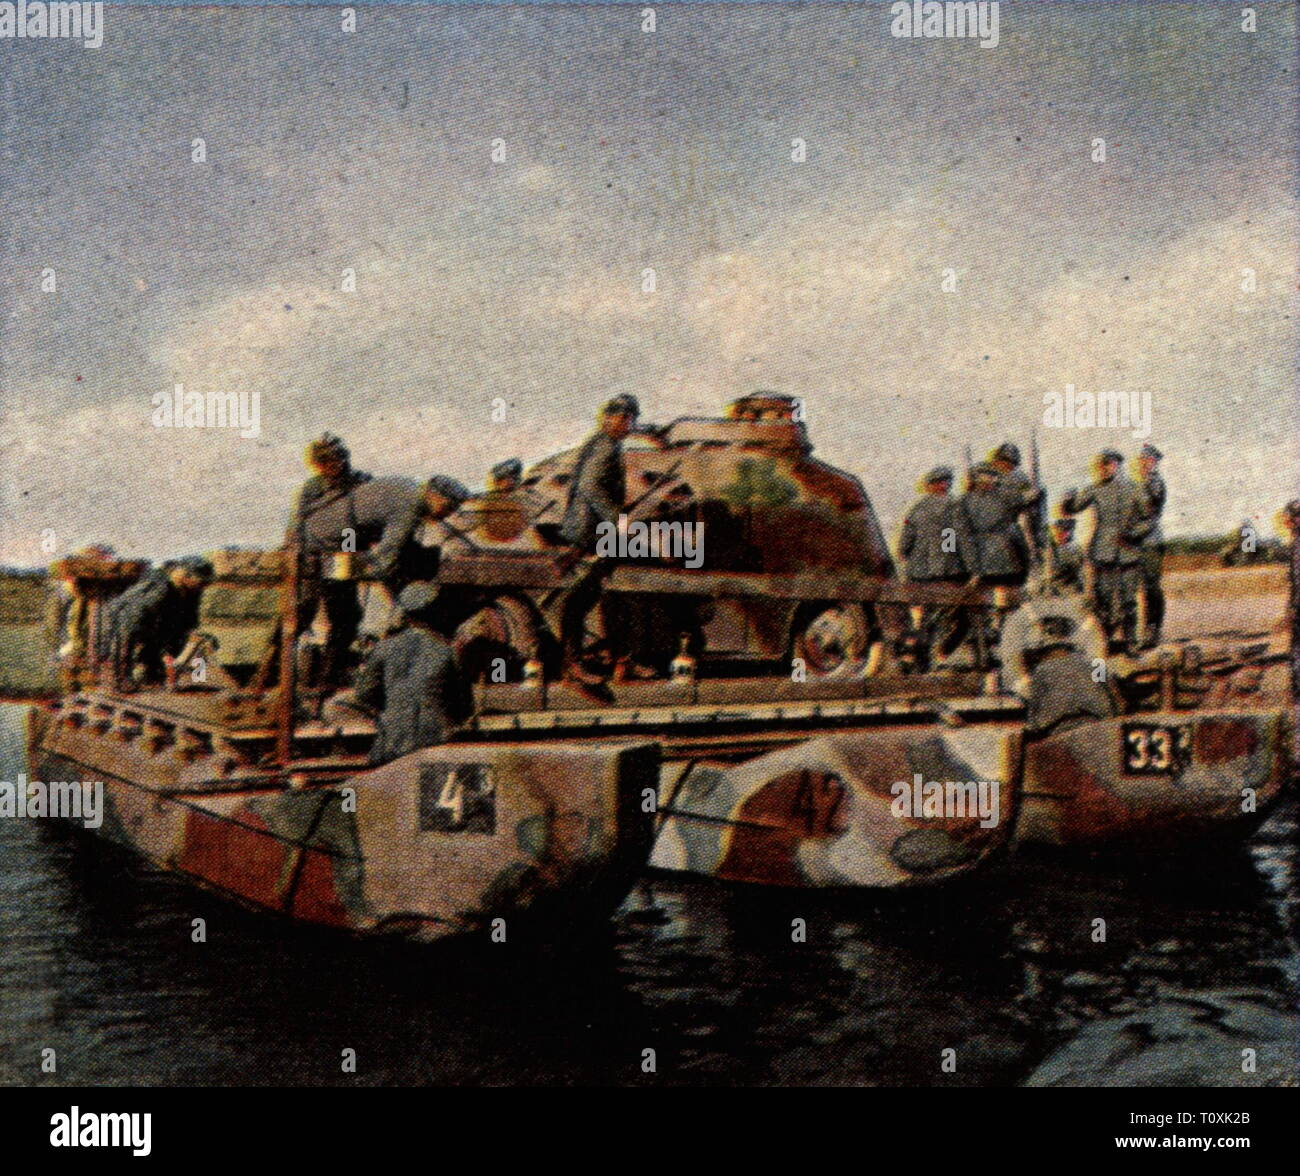 """military, Germany, army, exercises, autumn manoeuvre, September 1926, a dummy tank is transfered over a river, coloured photograph, cigarette card, series """"Die Nachkriegszeit"""", 1935, river crossing, crossing, traverse, crossings, traverses, drill, training, autumn, fall, tank, panzer, tanks, dummy, dummies, camouflage, camouflages, comouflage coating, camouflage paint, Flecktarn Camouflage, ferry, ferries, pontoon, pontoons, soldiers, soldier, Reichswehr, people, Germany, German Reich, Weimar Republic, 1920s, 20th century, army, armies, exercises, Additional-Rights-Clearance-Info-Not-Available Stock Photo"""